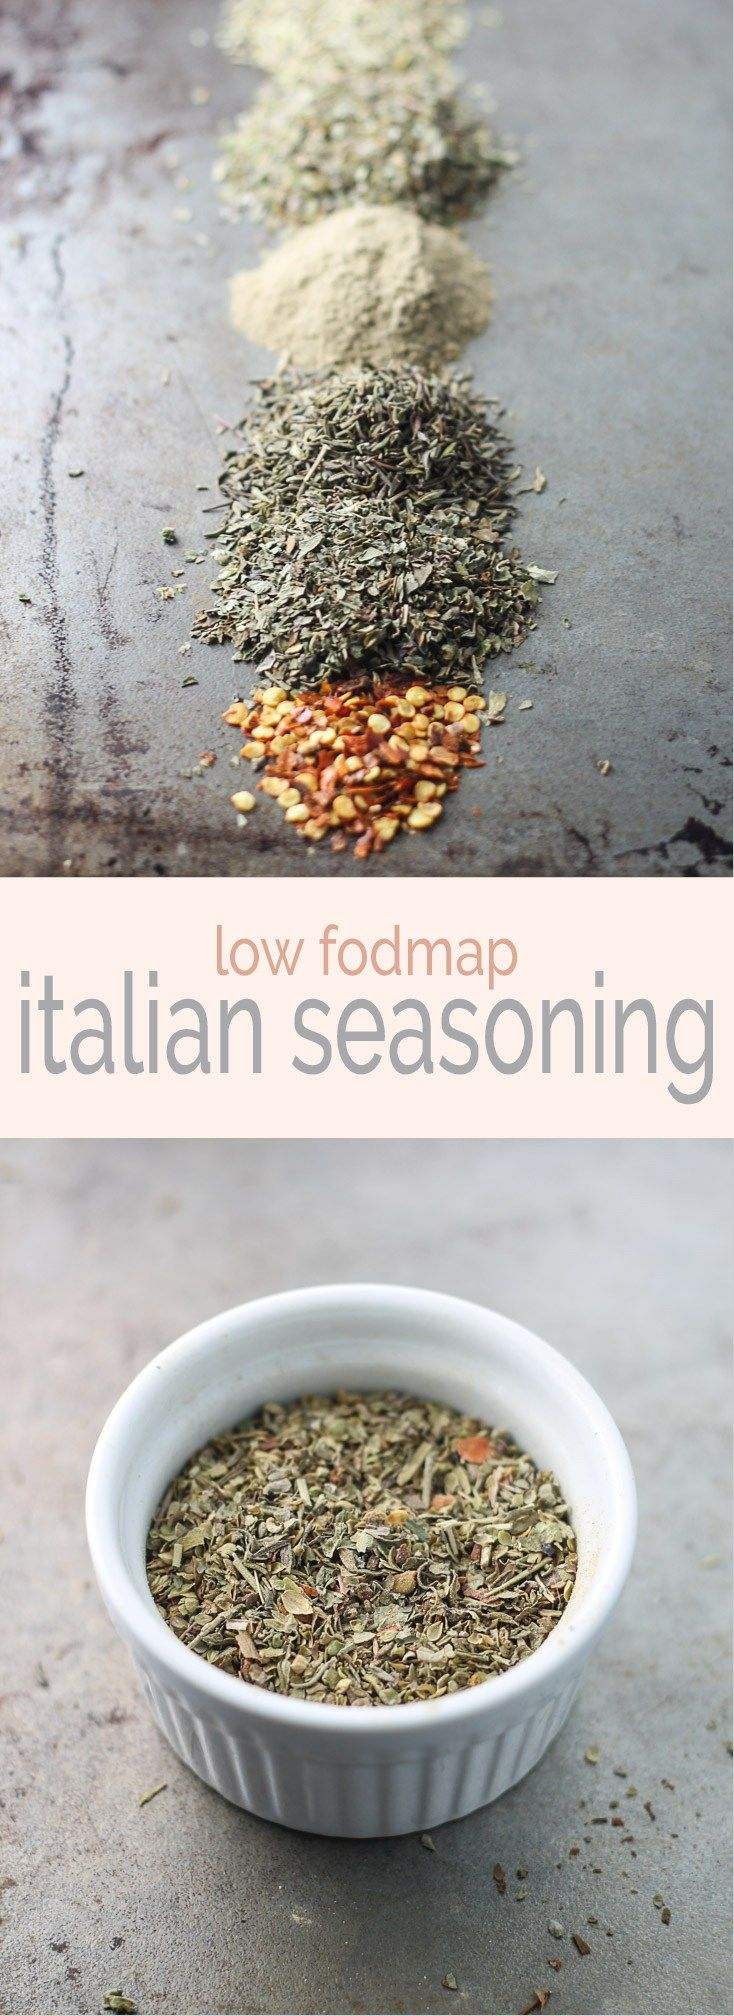 Add classic flavor to meatballs, spaghetti and more with this low fodmap Italian seasoning recipe - no garlic or onion needed!